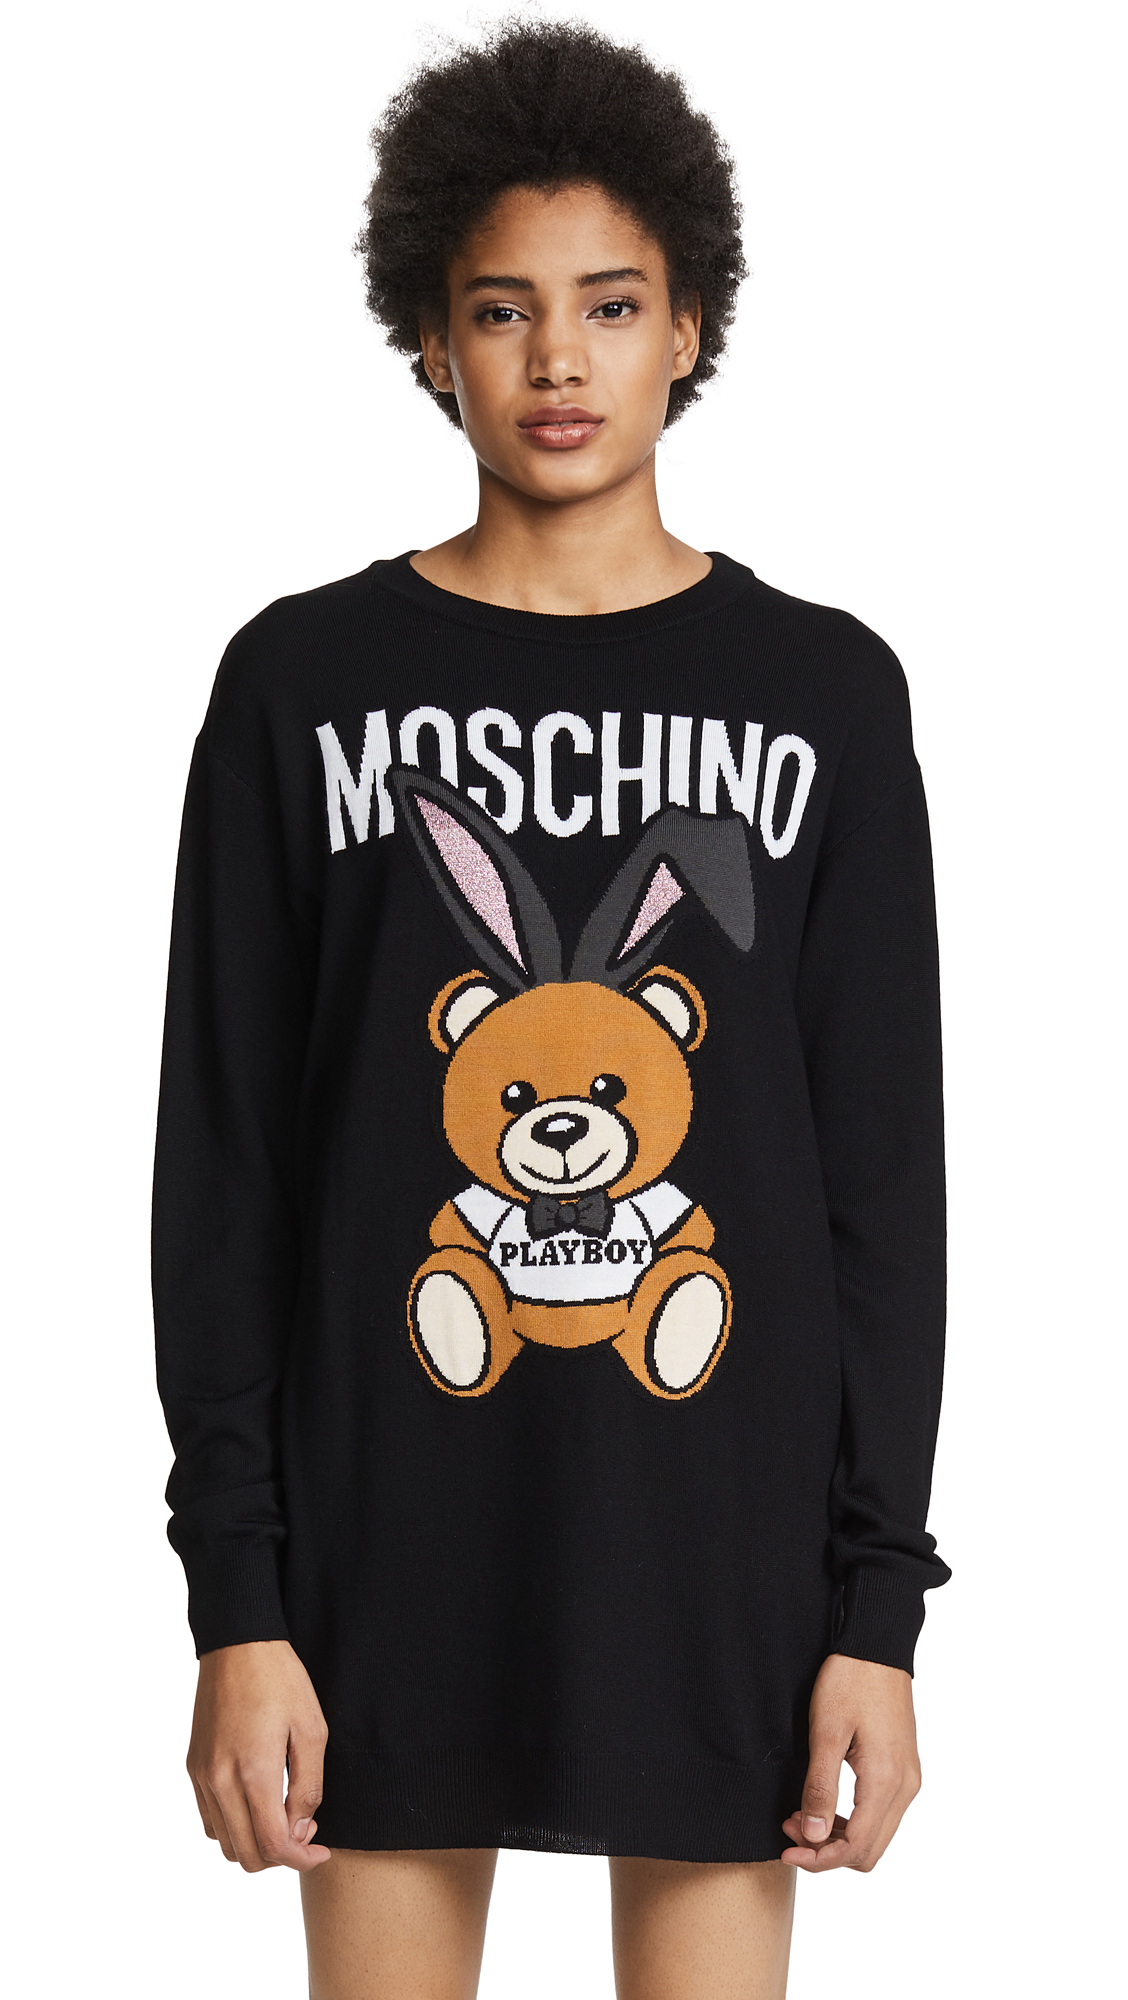 Moschino Logo Sweater Dress - Black